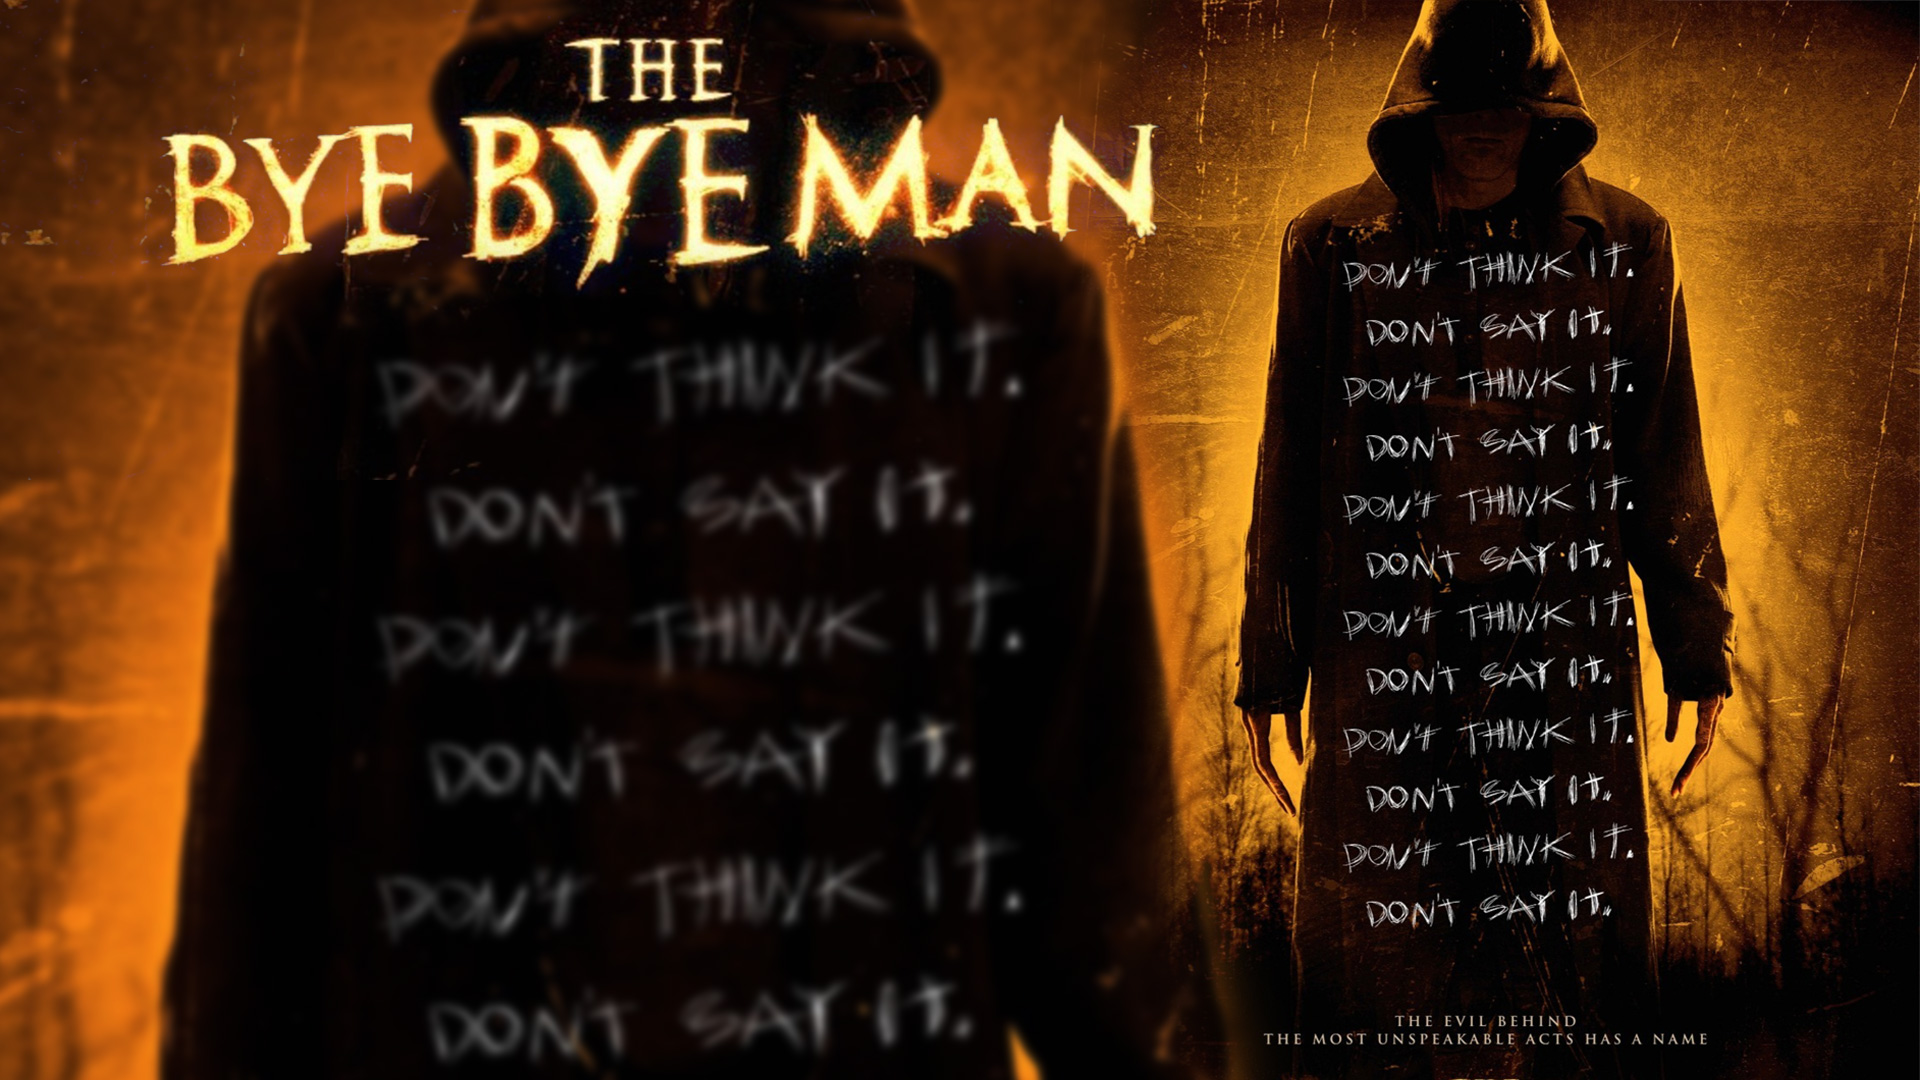 The-Bye-Bye-Man-Movie-wallpaper-HD-film-2016-poster-image-1.jpg